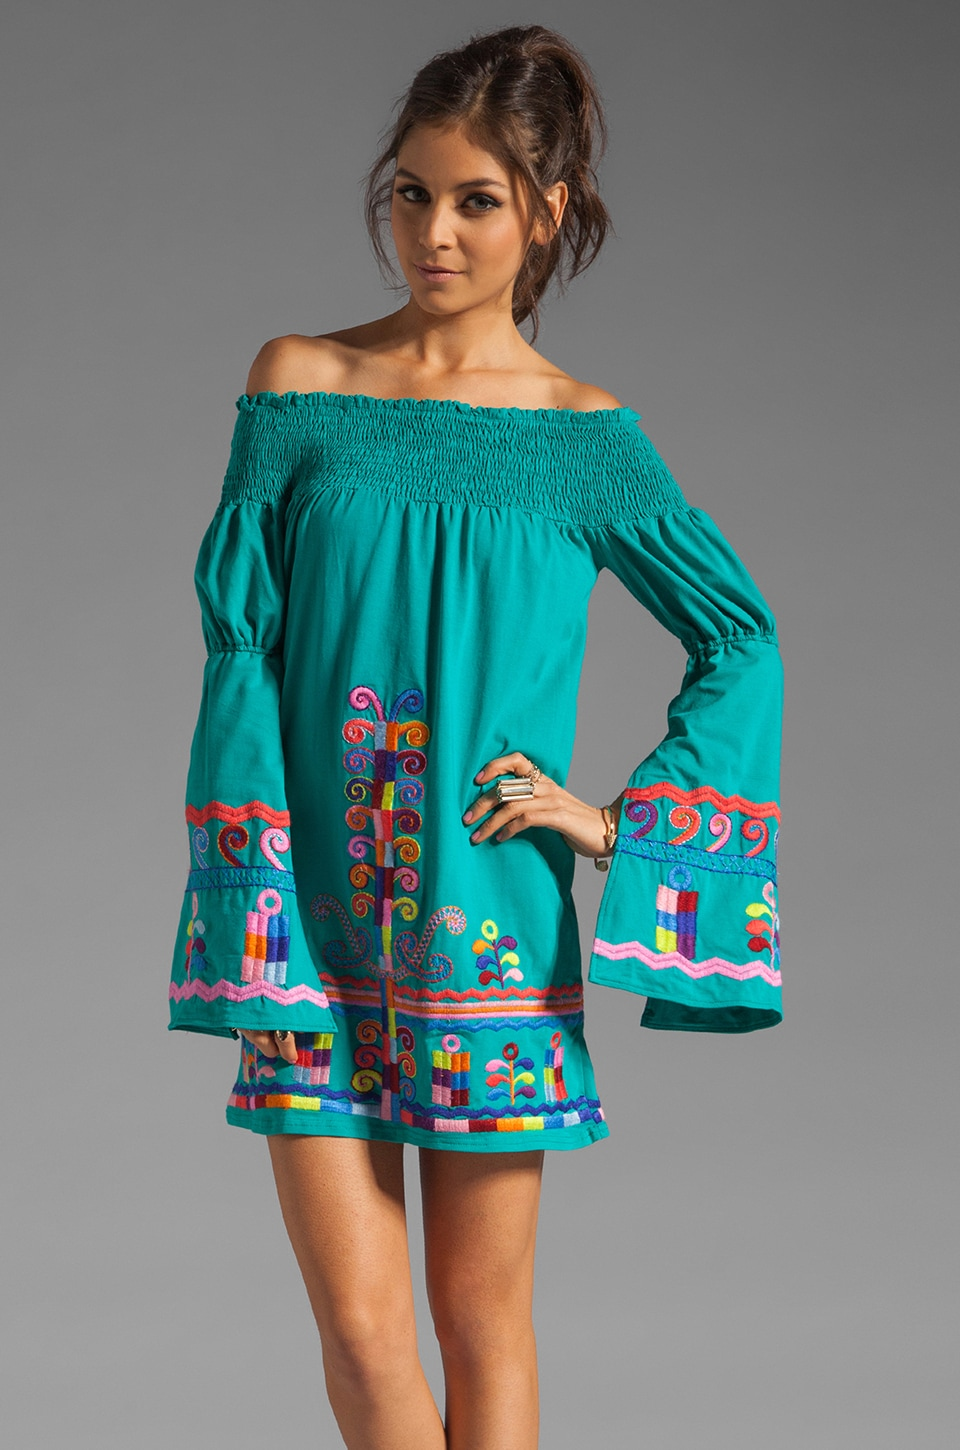 VAVA by Joy Han Dara Off the Shoulder Dress in Turquoise